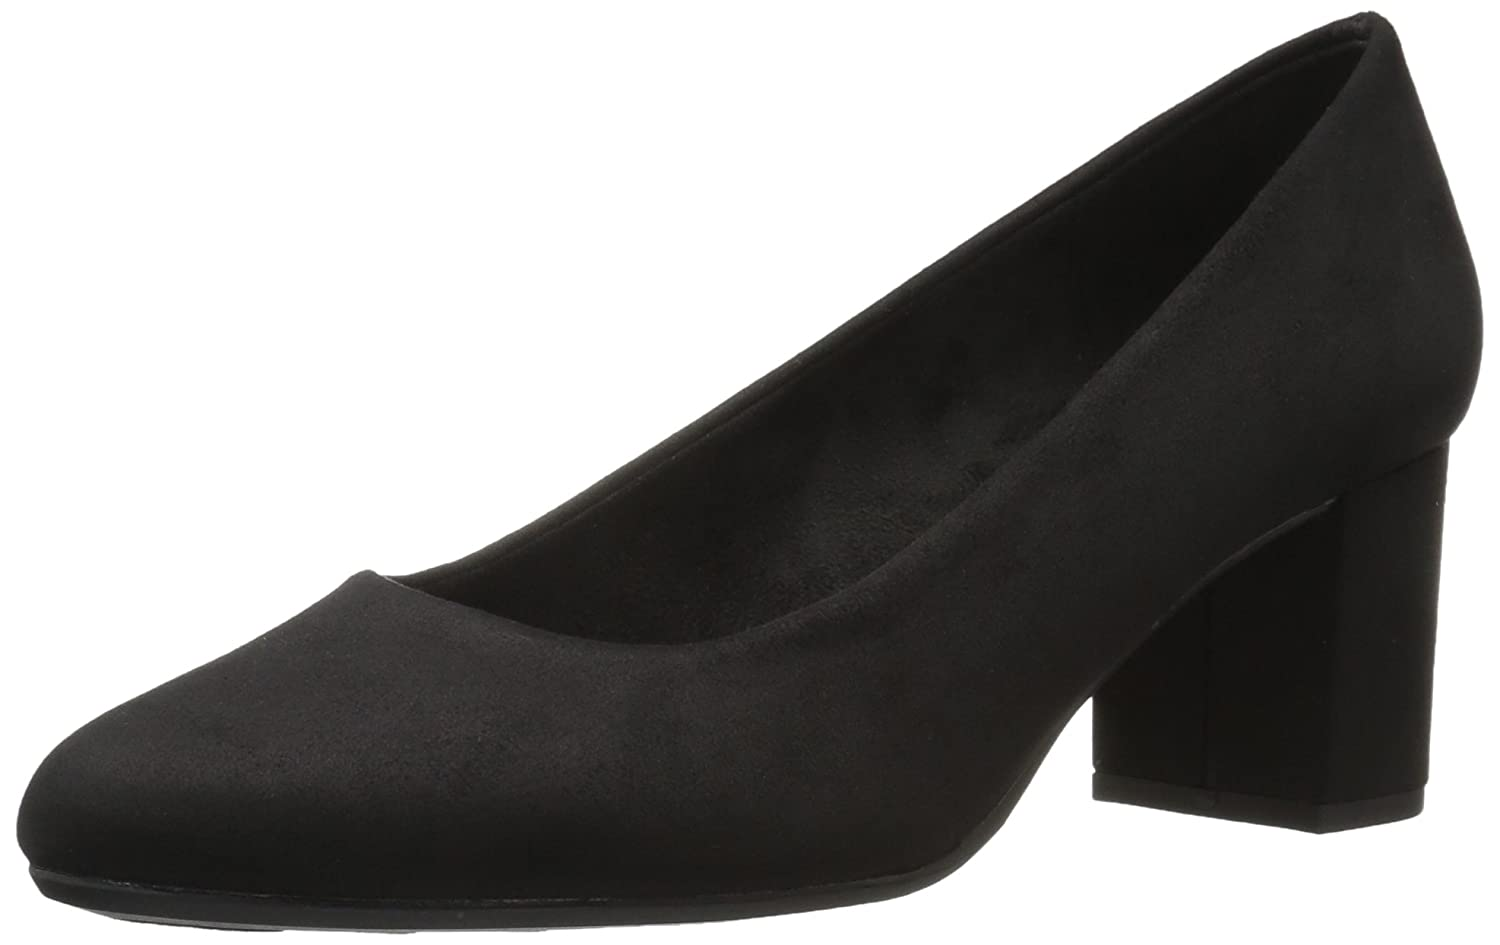 Easy Street Women's Proper Dress Pump B072Q1TMRW 7 W US|Black Super Suede